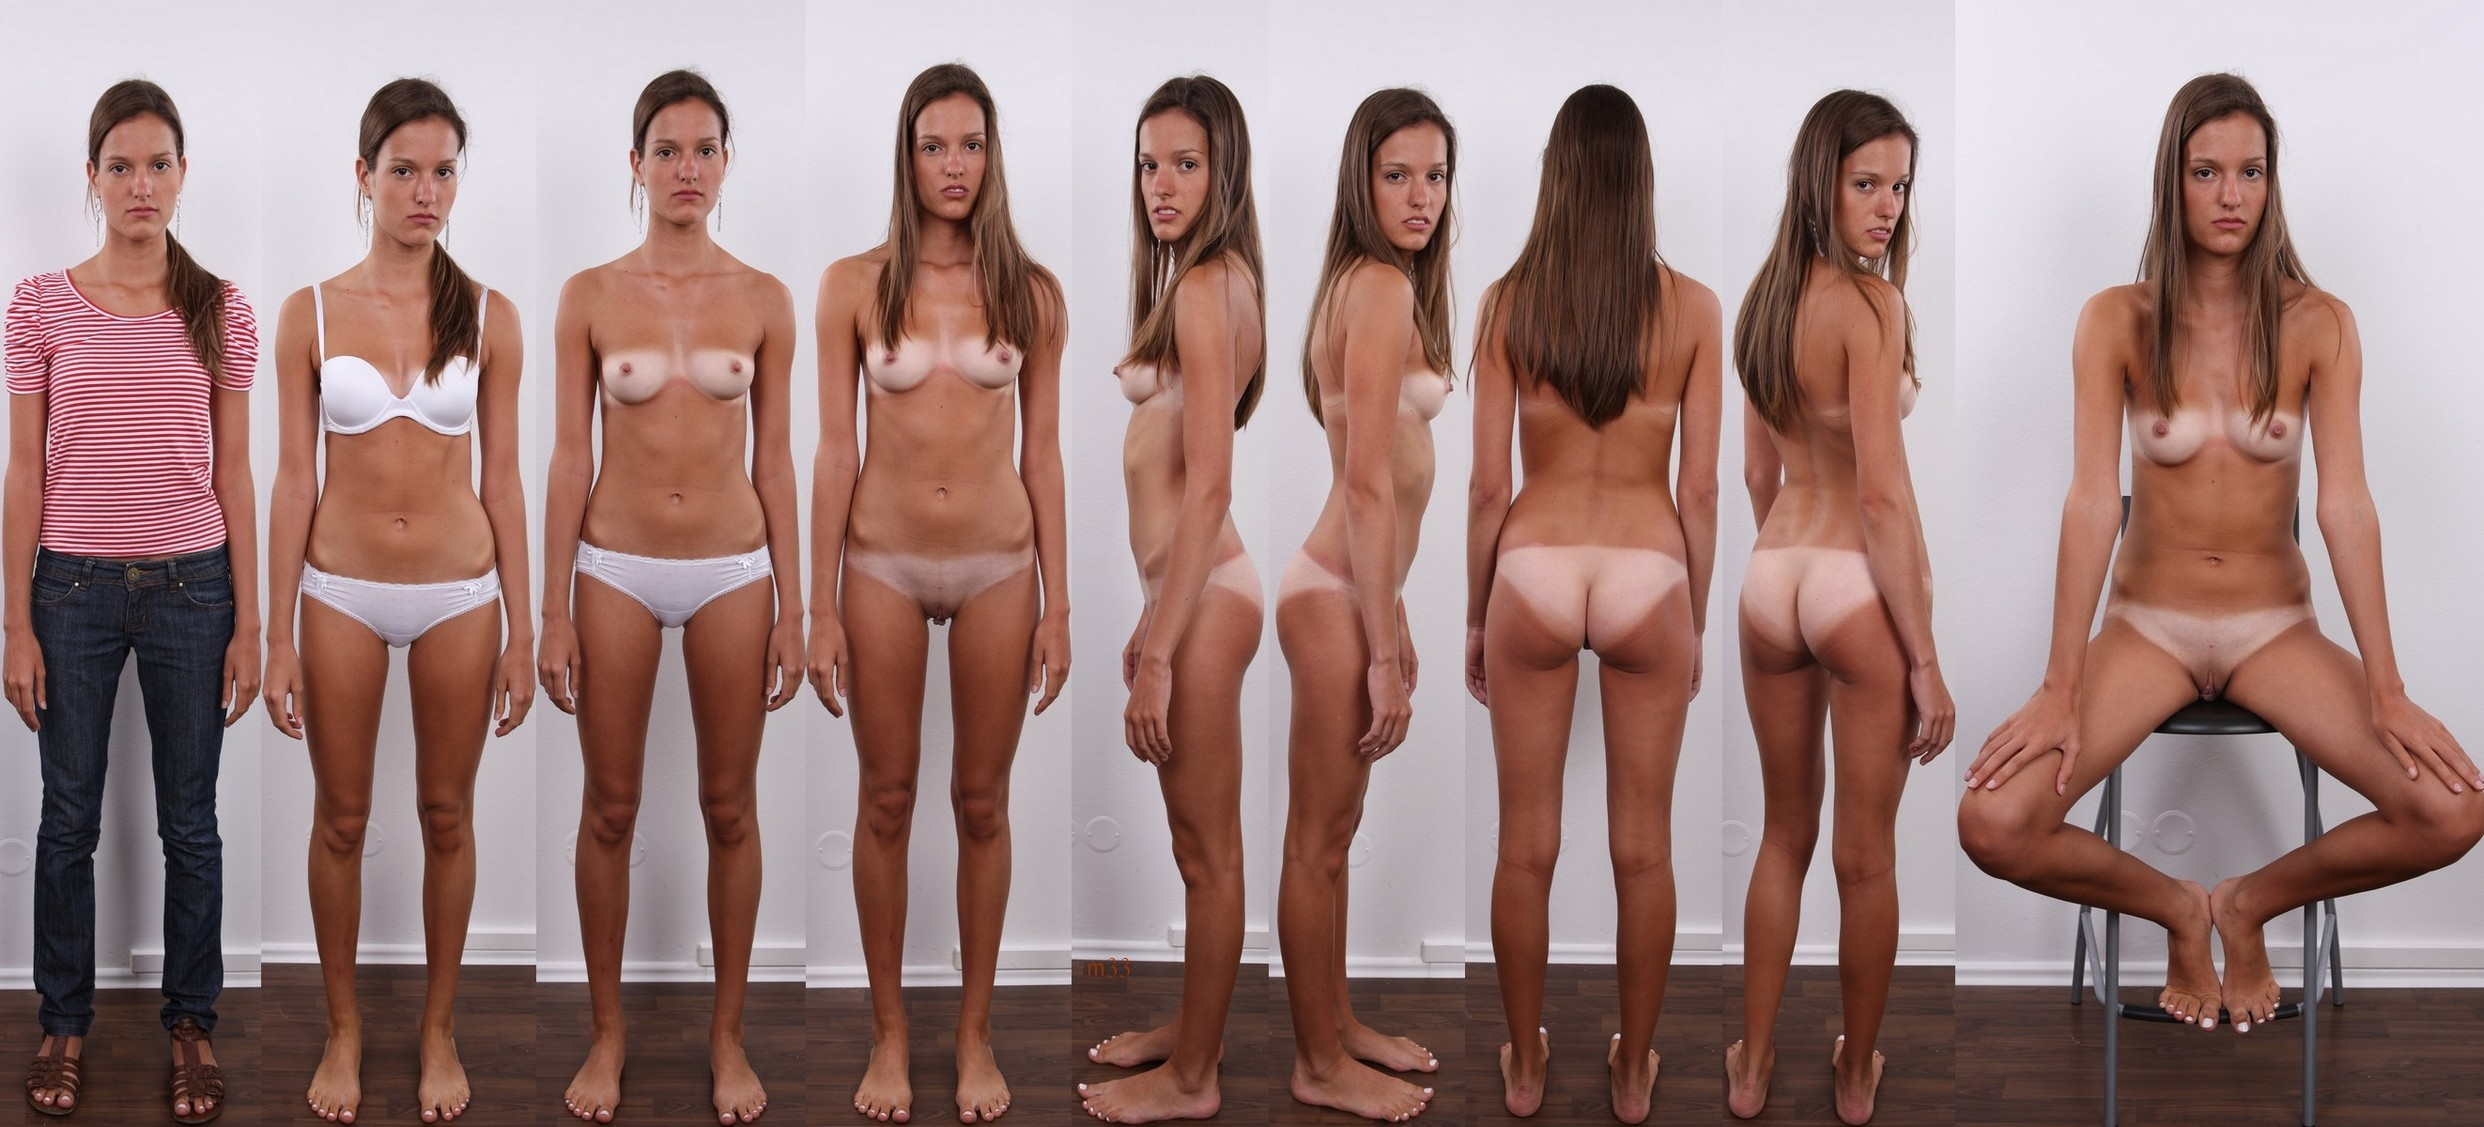 regular mexican women pose naked pics